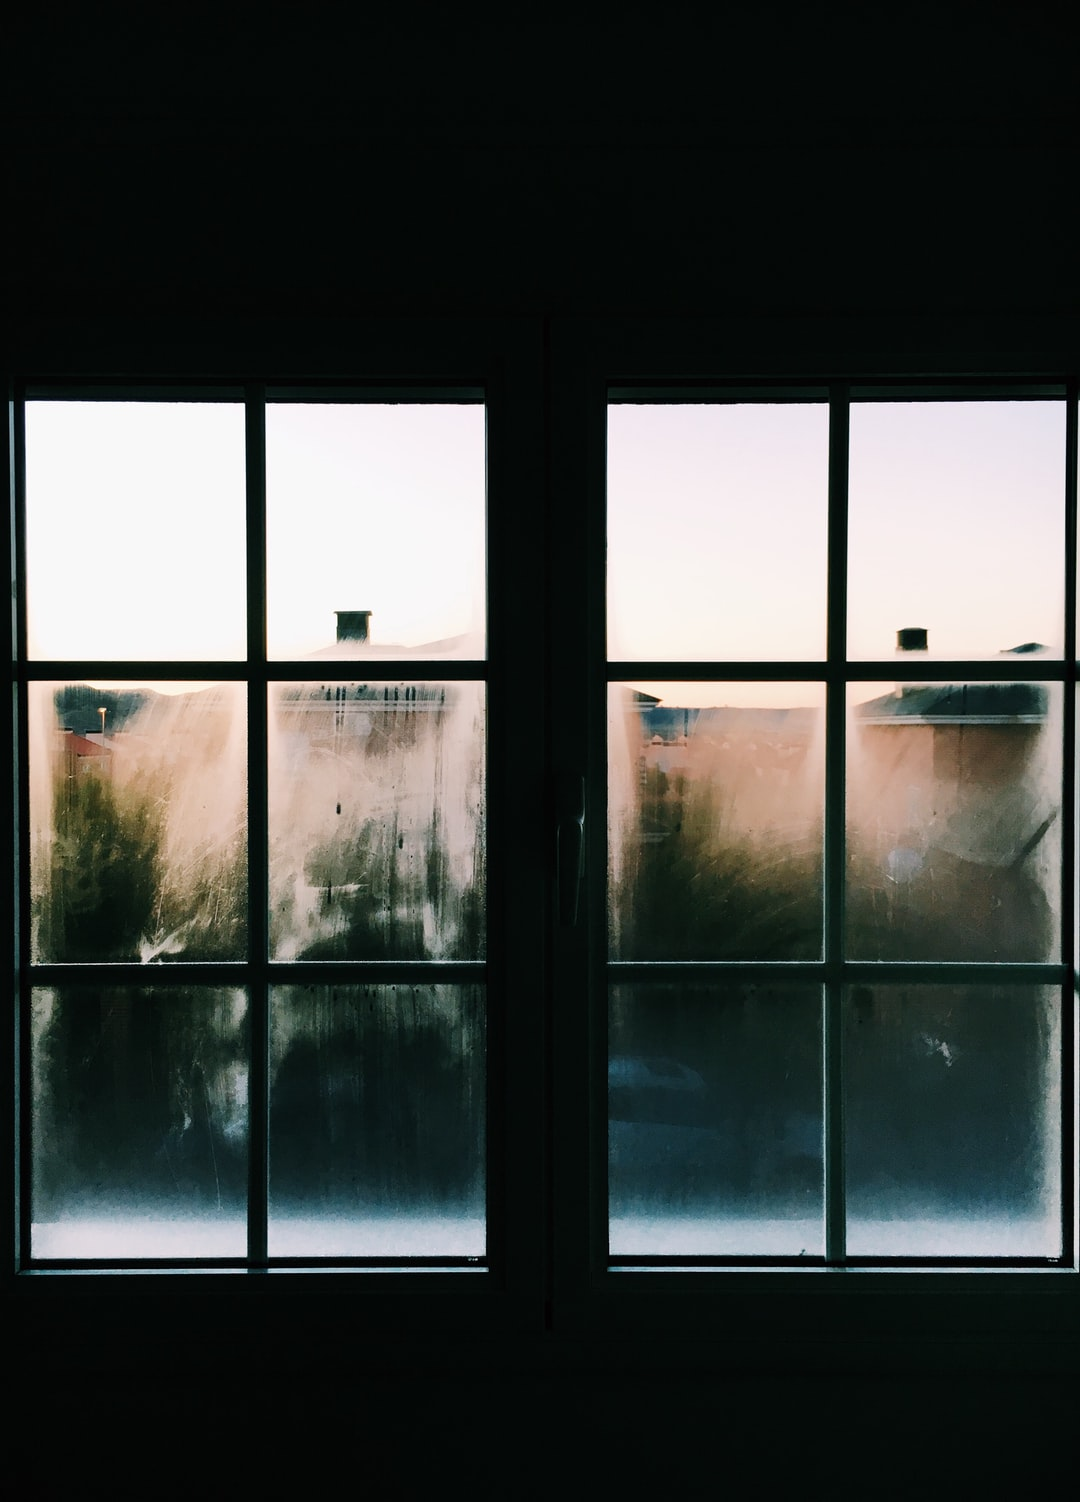 Window pictures download free images on unsplash for Window design 4 4